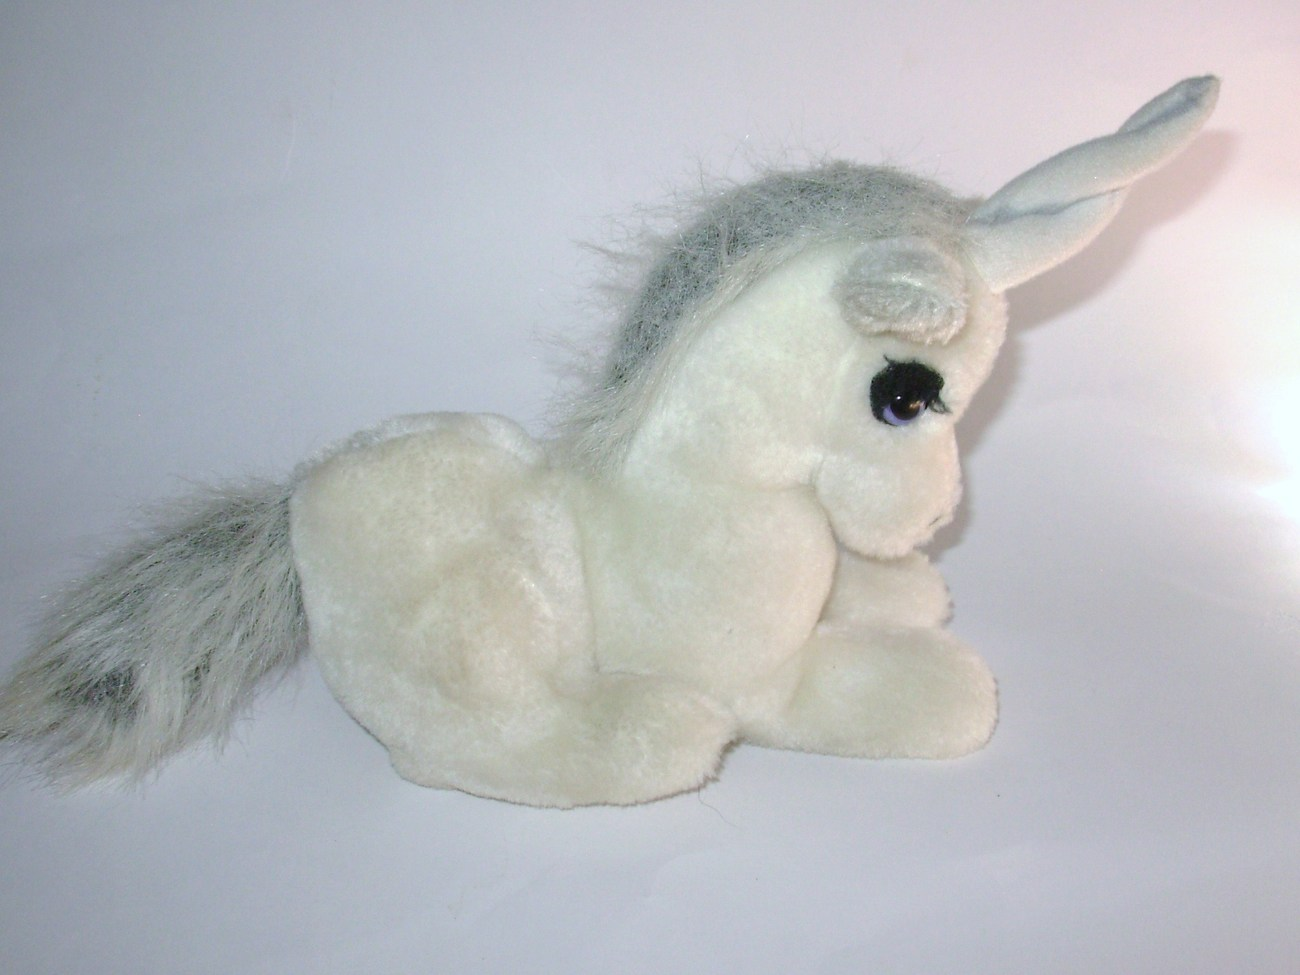 Vintage Fun Farm Unicorn Plush Stuffed Animal Toy White Gray